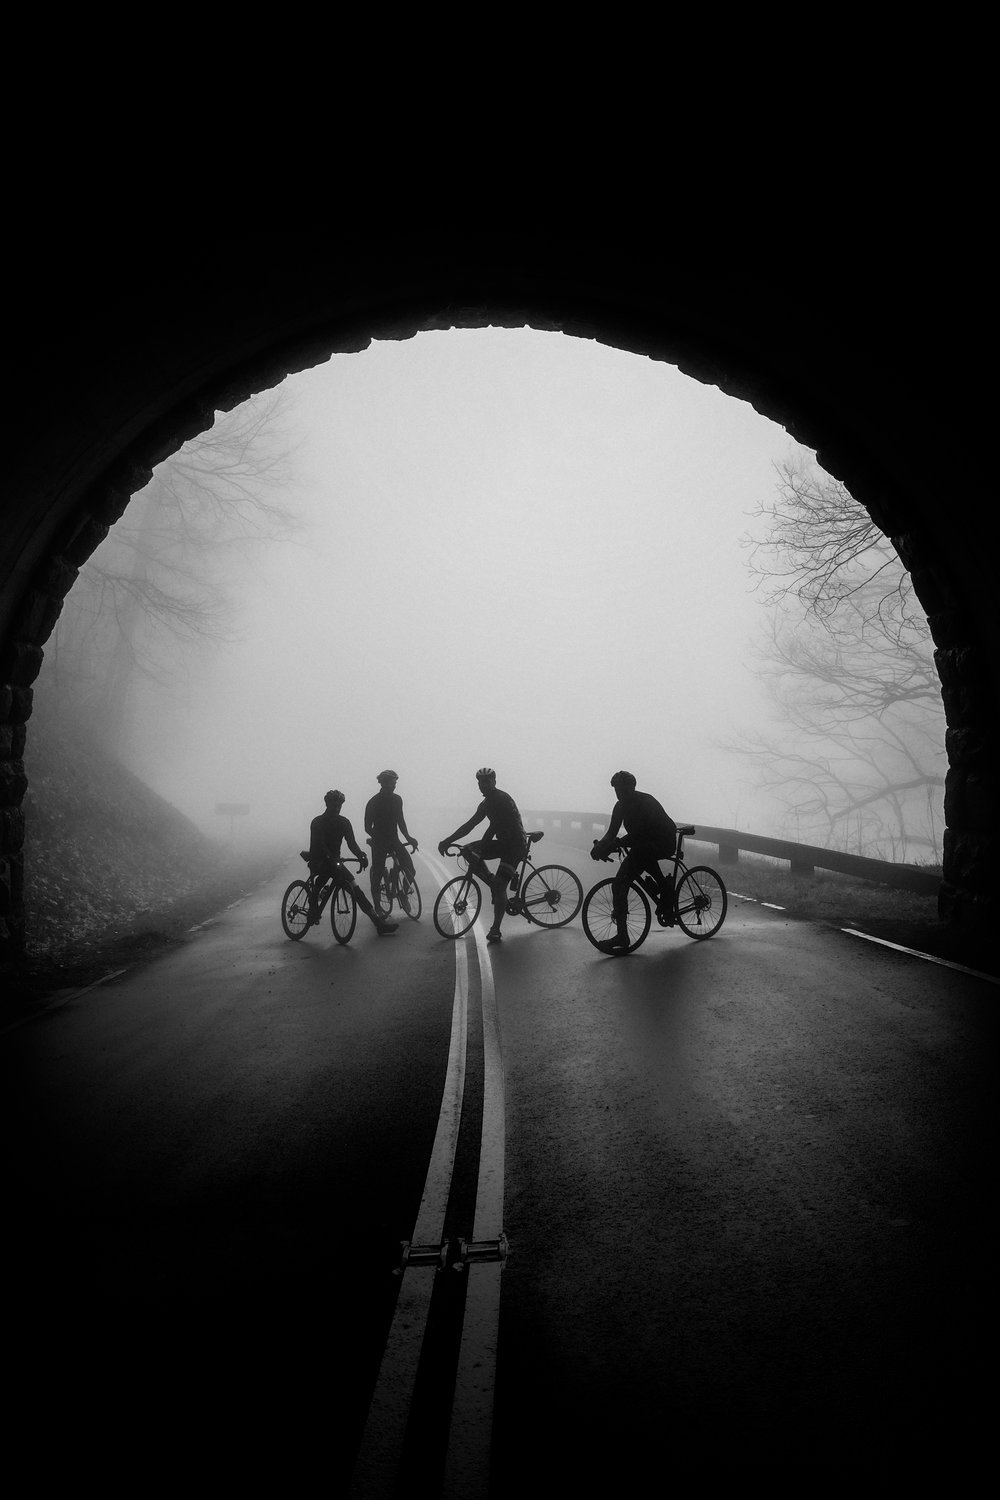 MAGIC HAPPENS - when the Blue Ridge Parkway closes to thru-traffic for winter...and the fog rolls in.